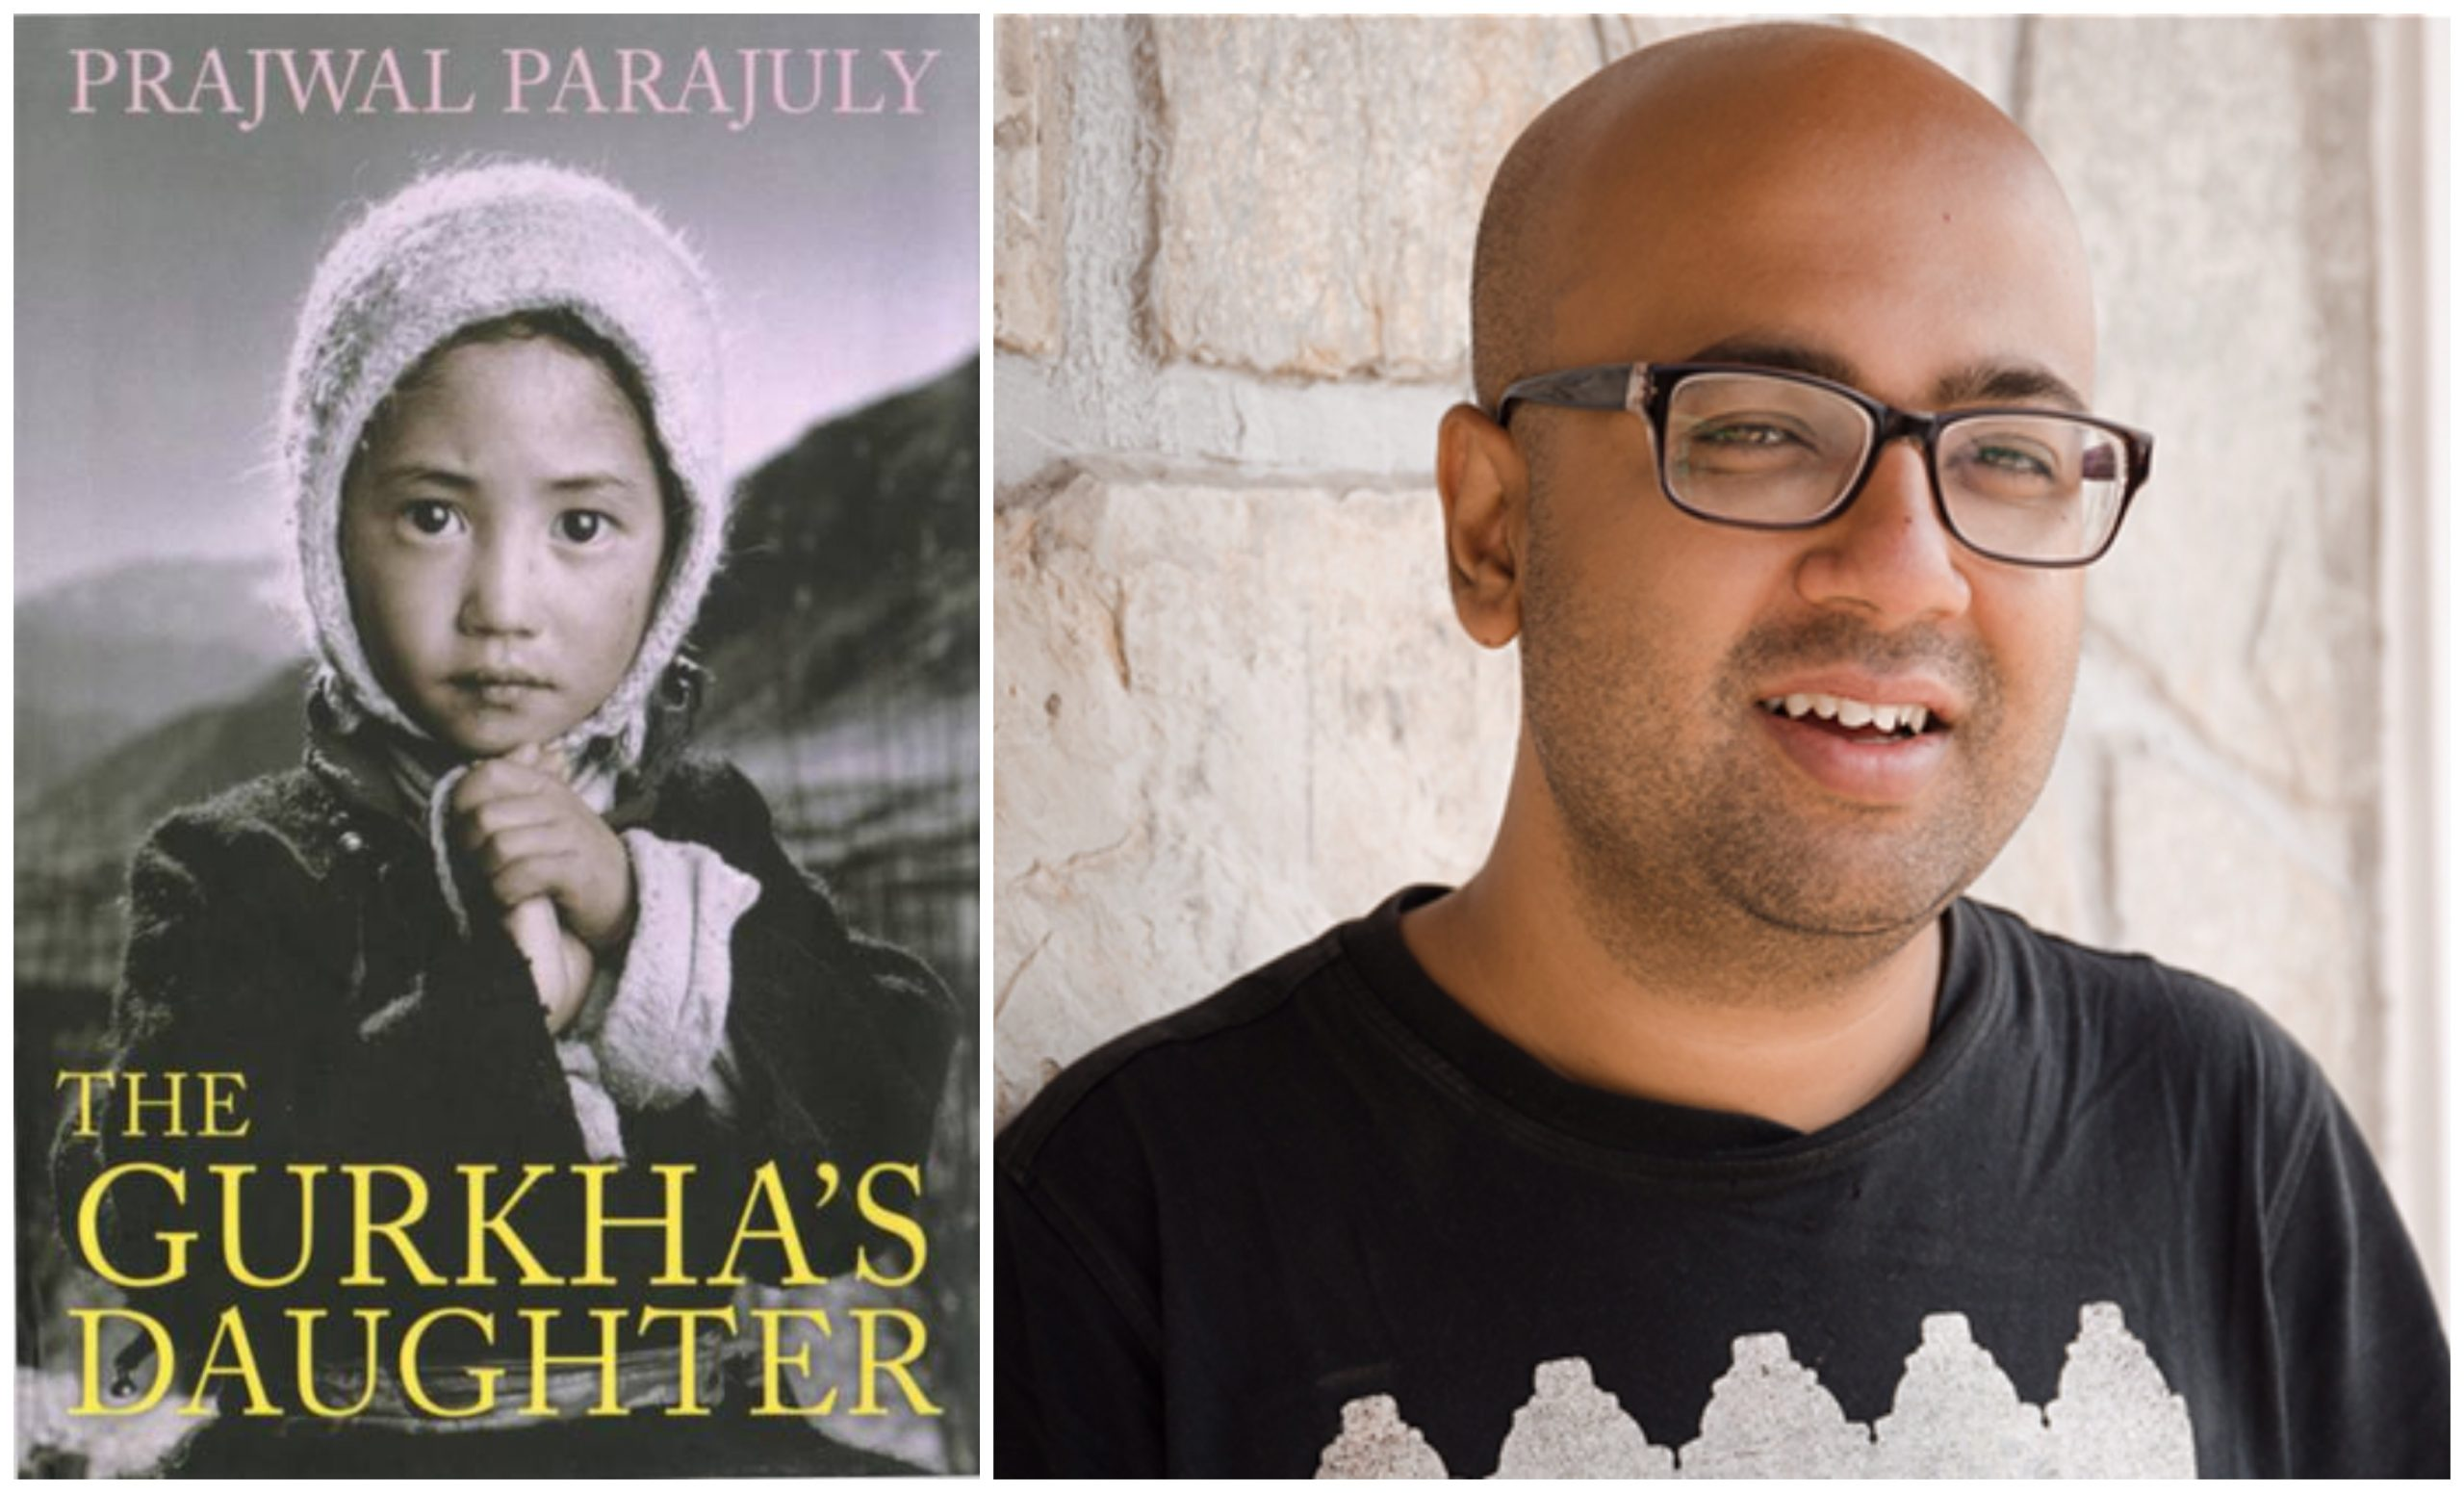 Book Review: The Gurkha's Daughter By Prajwal Parajuly